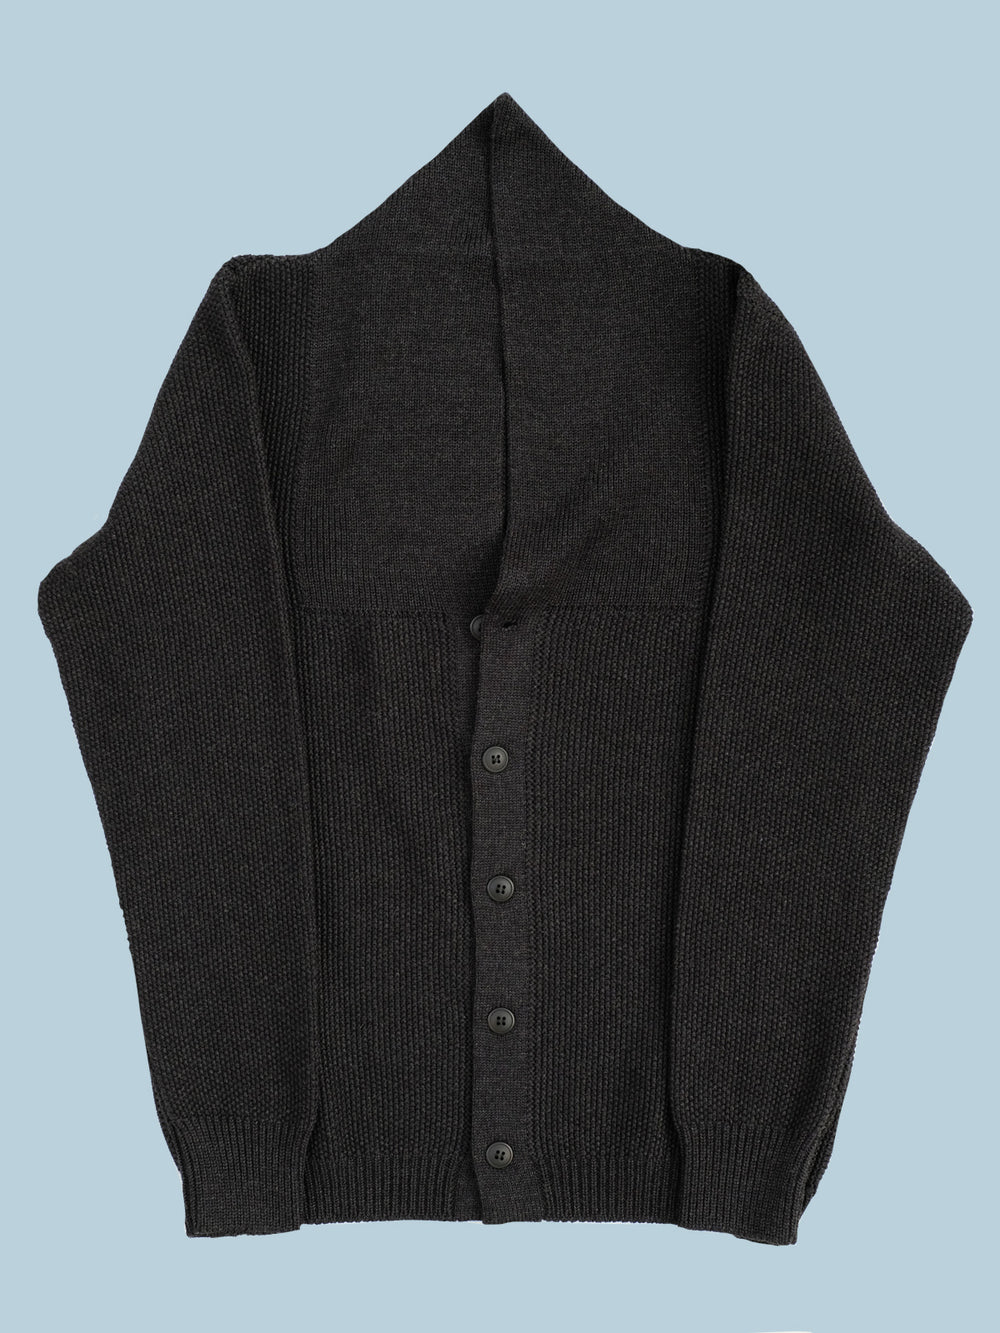 RANDY / CARDIGAN / ANTHRACITE